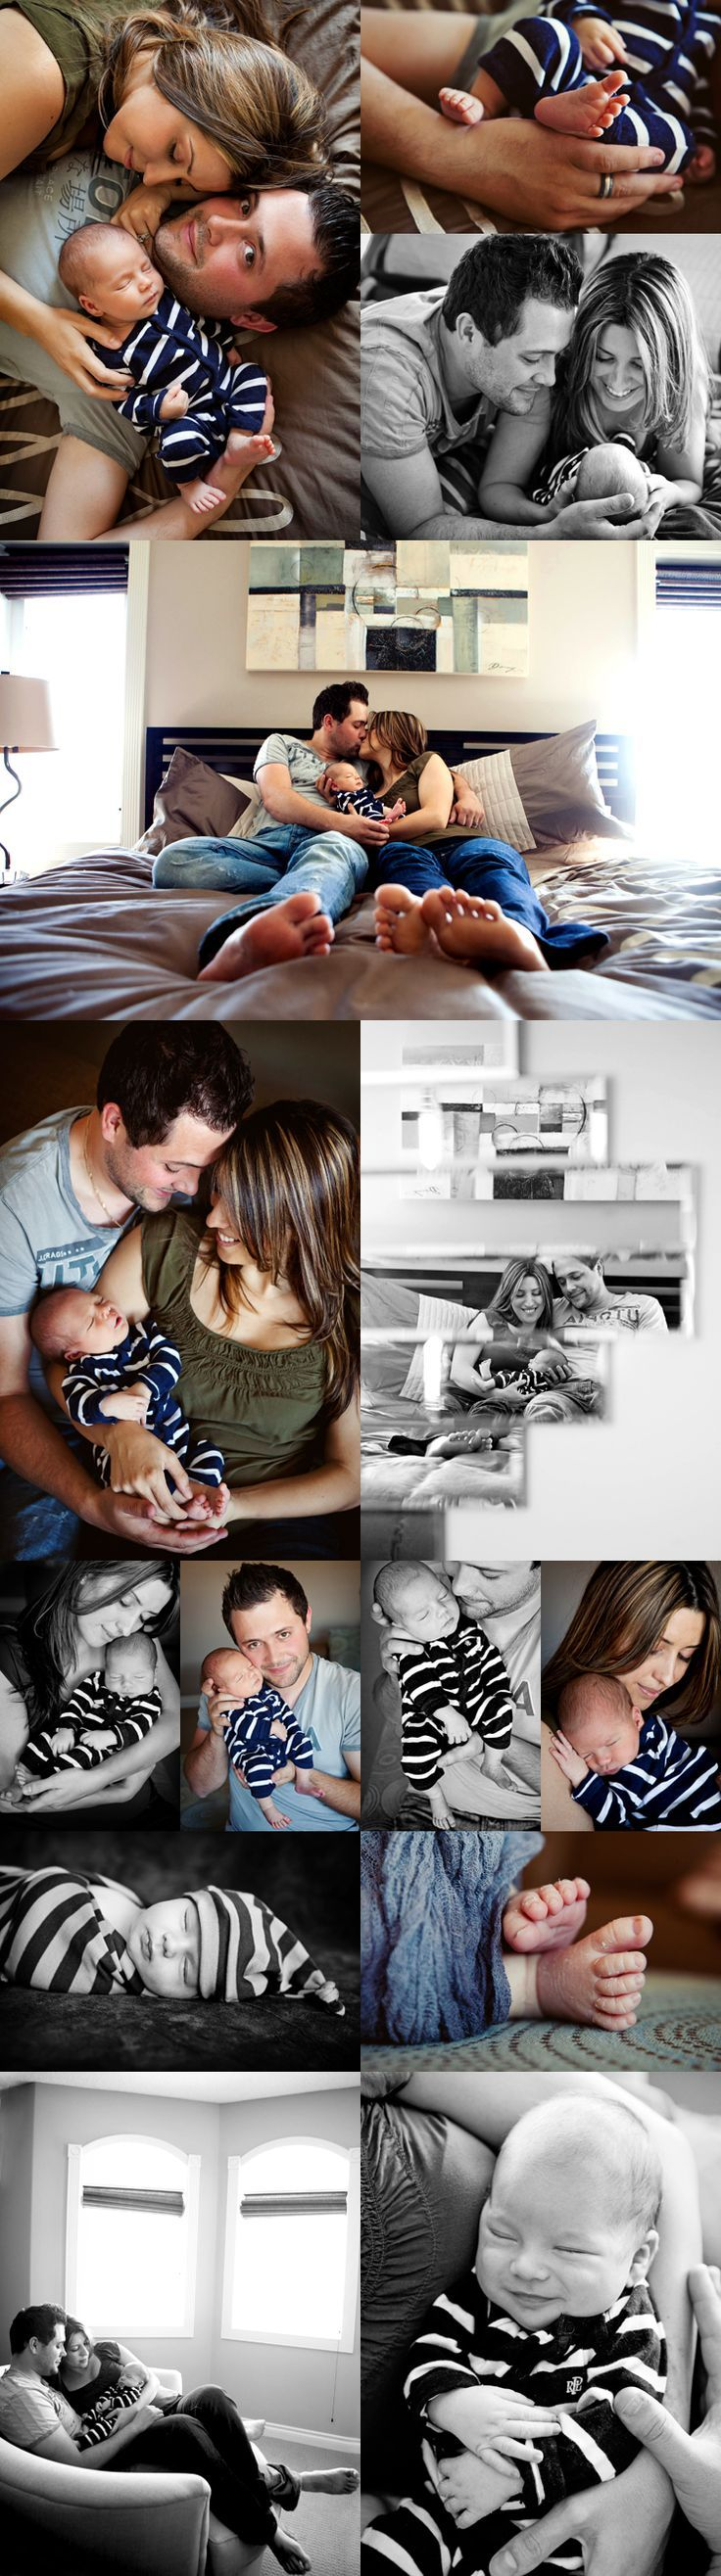 I want pictures like these :)